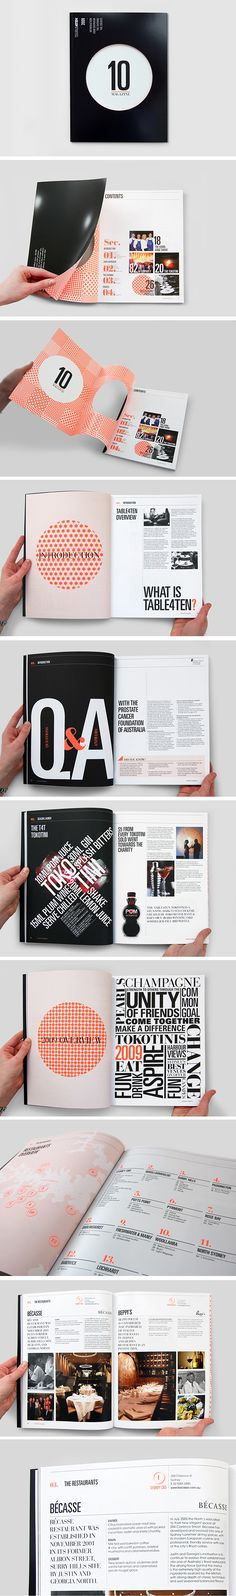 Nice use of typography and patterns for this magazine layout.